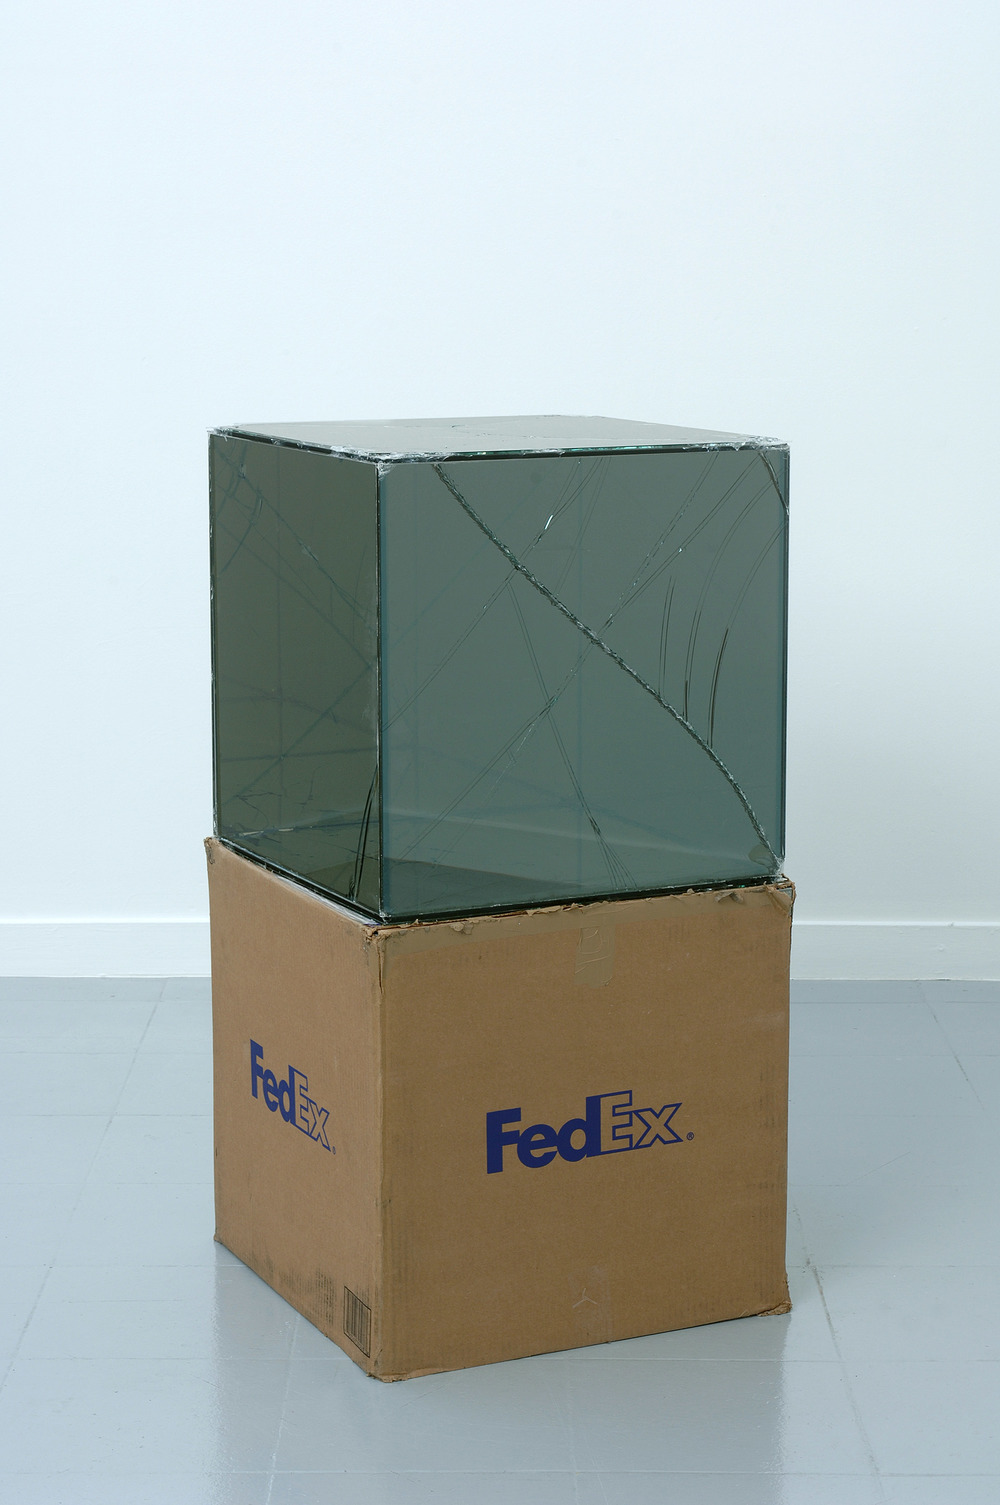 FedEx Large Kraft Box 2005 FEDEX 330508 REV 10/05 SSCC, International Priority, Los Angeles–Brussels trk#865282057942, October 27–30, 2008    2008–   Laminated Mirropane, FedEx shipping box, accrued FedEx shipping and tracking labels, silicone, metal, and tape  20 x 20 x 20 inches   Industrial Pictures, 2008